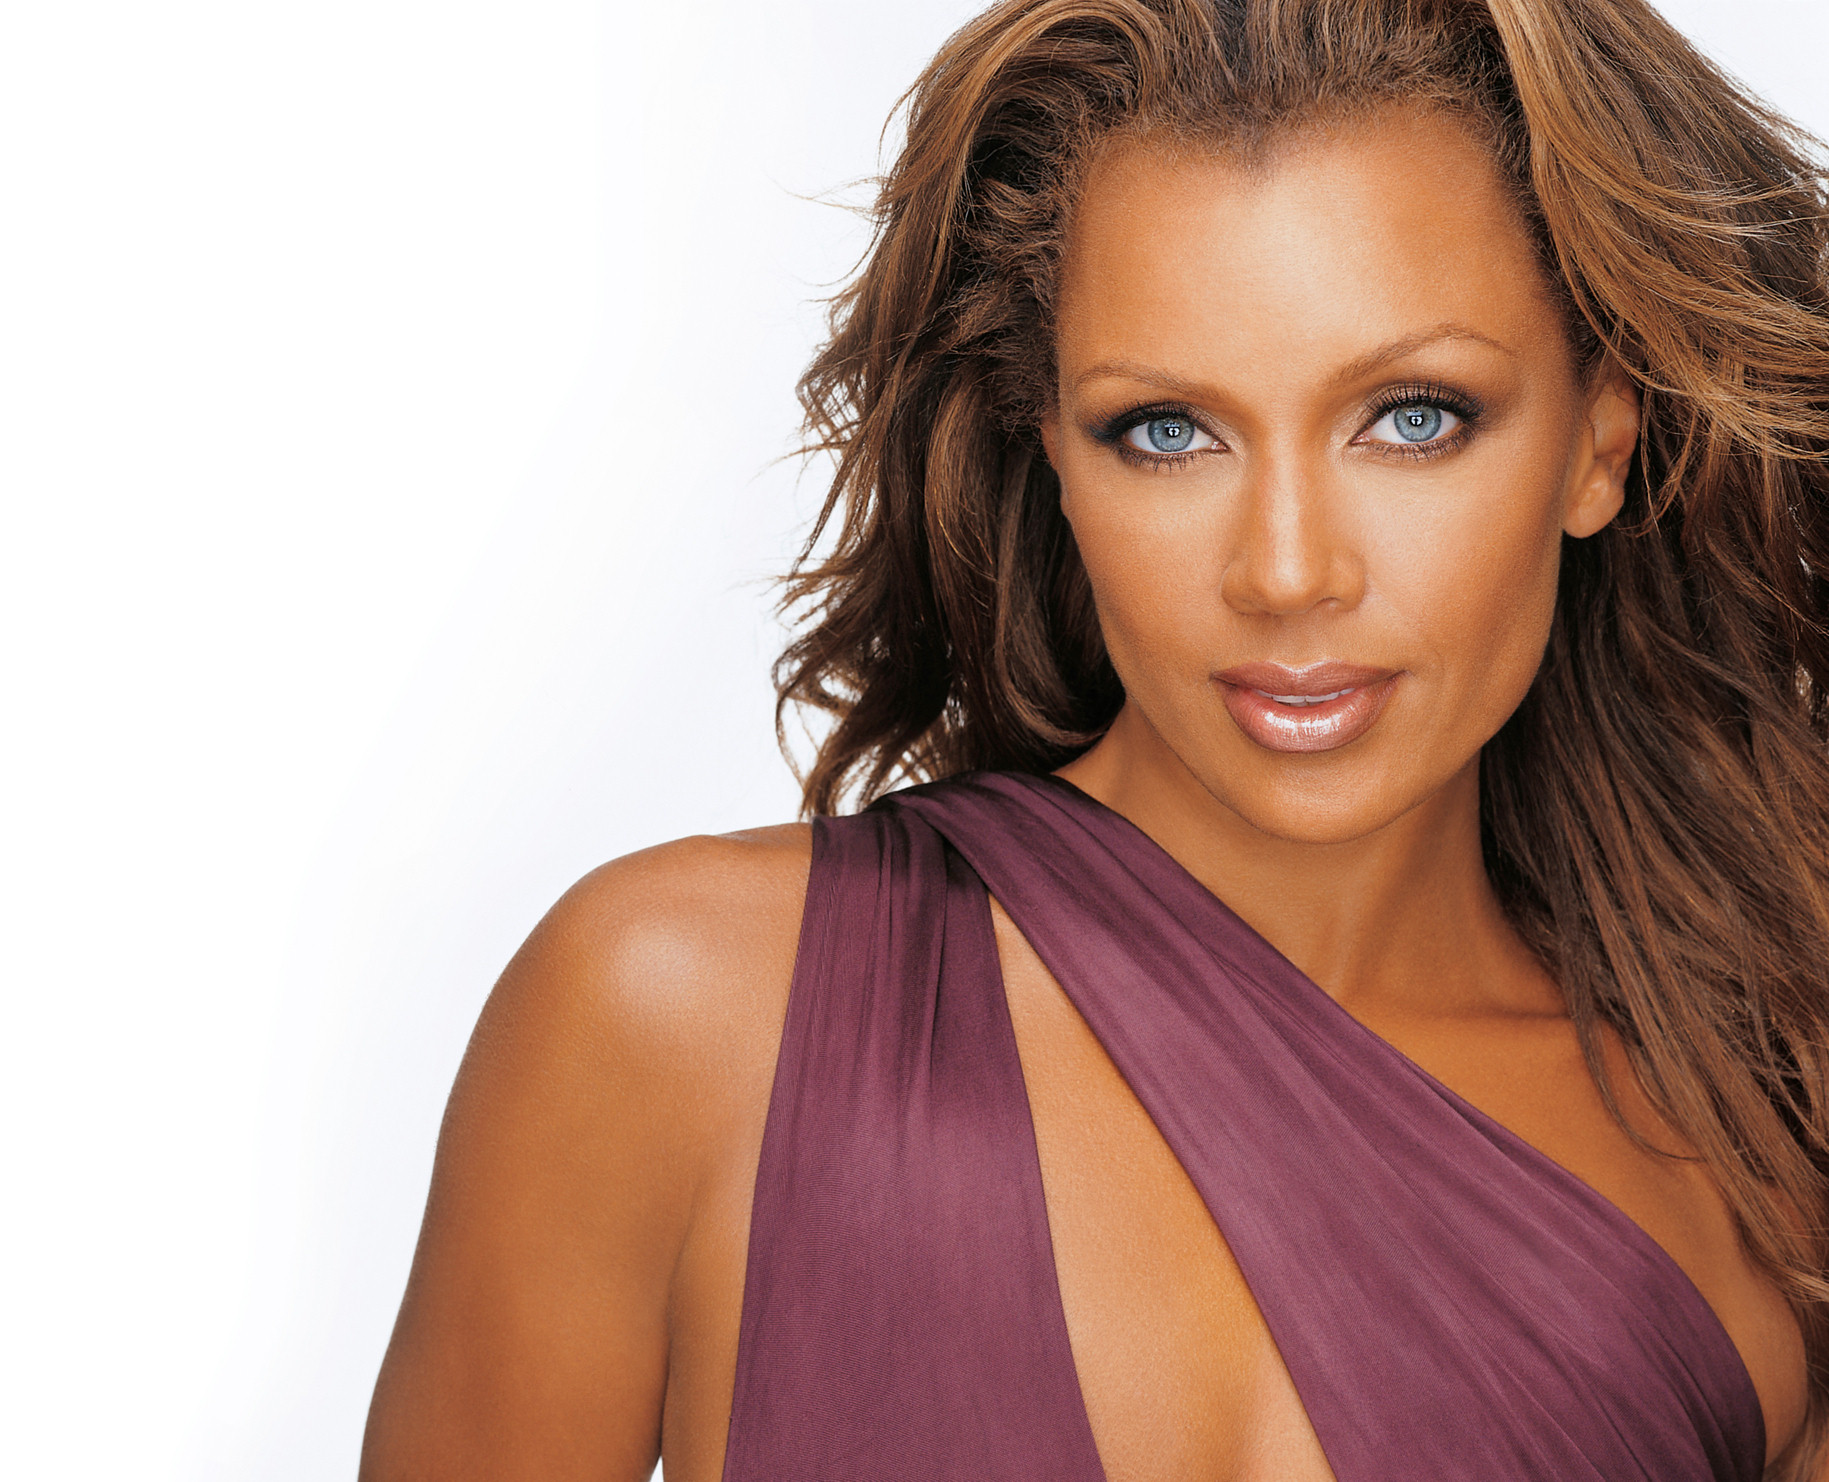 Vanessa Williams nude (93 photos), Tits, Bikini, Twitter, legs 2019